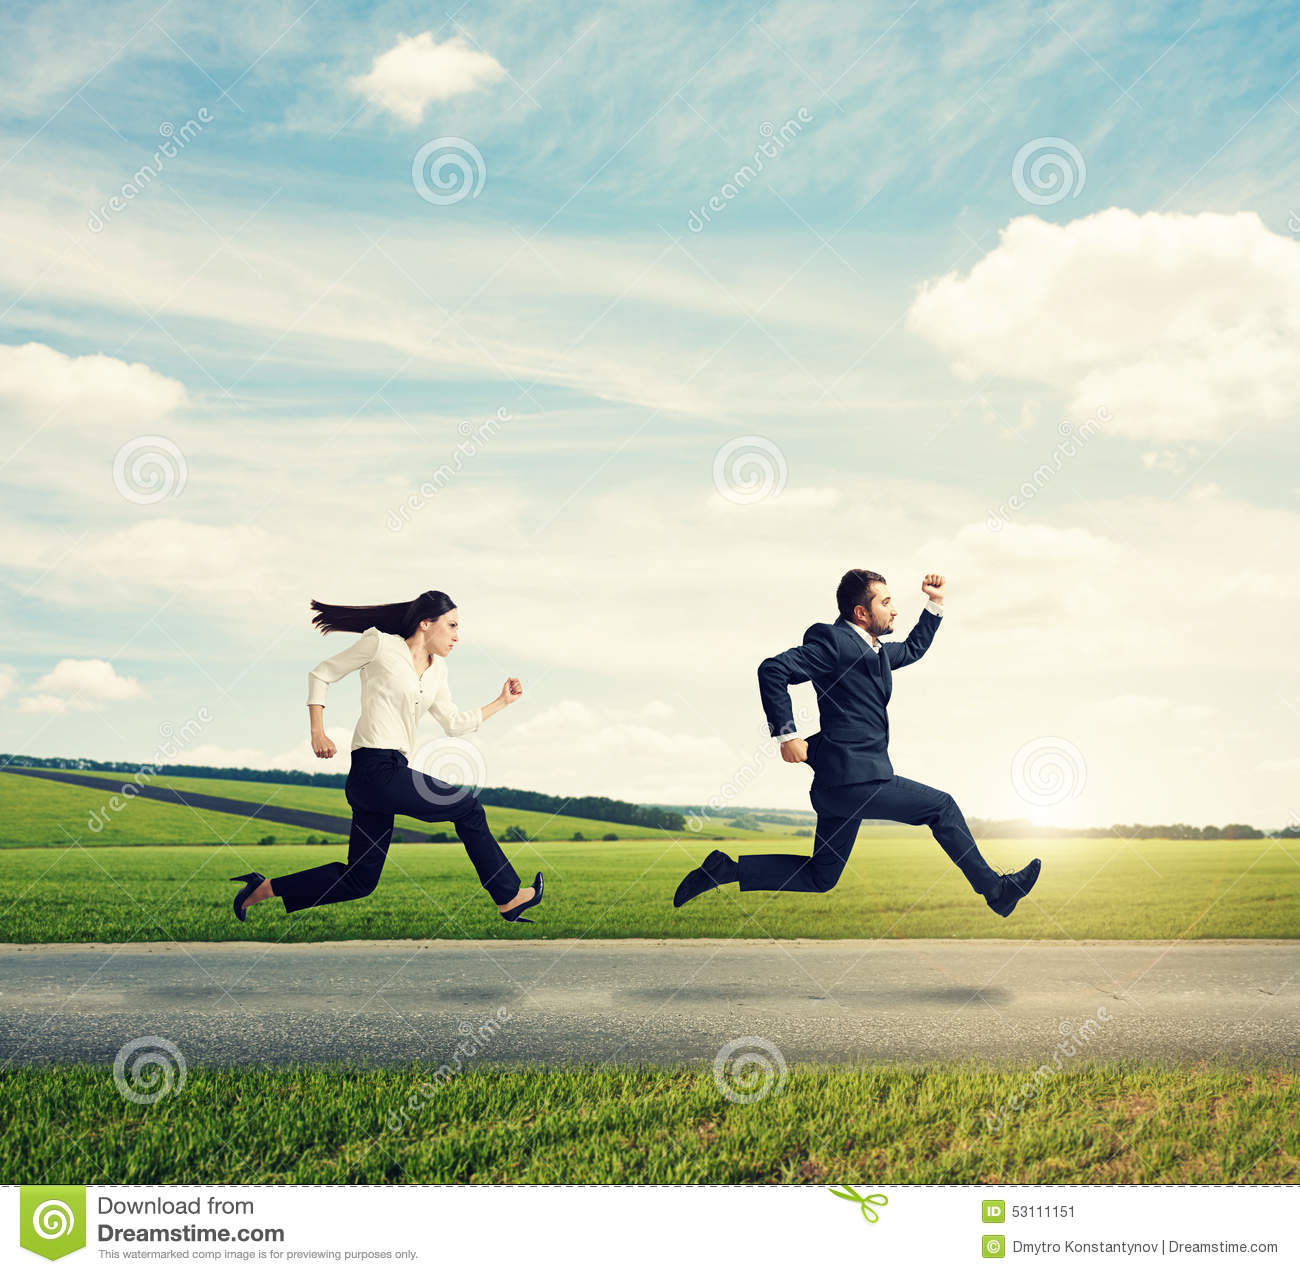 man running from women man and woman in formal wear ...